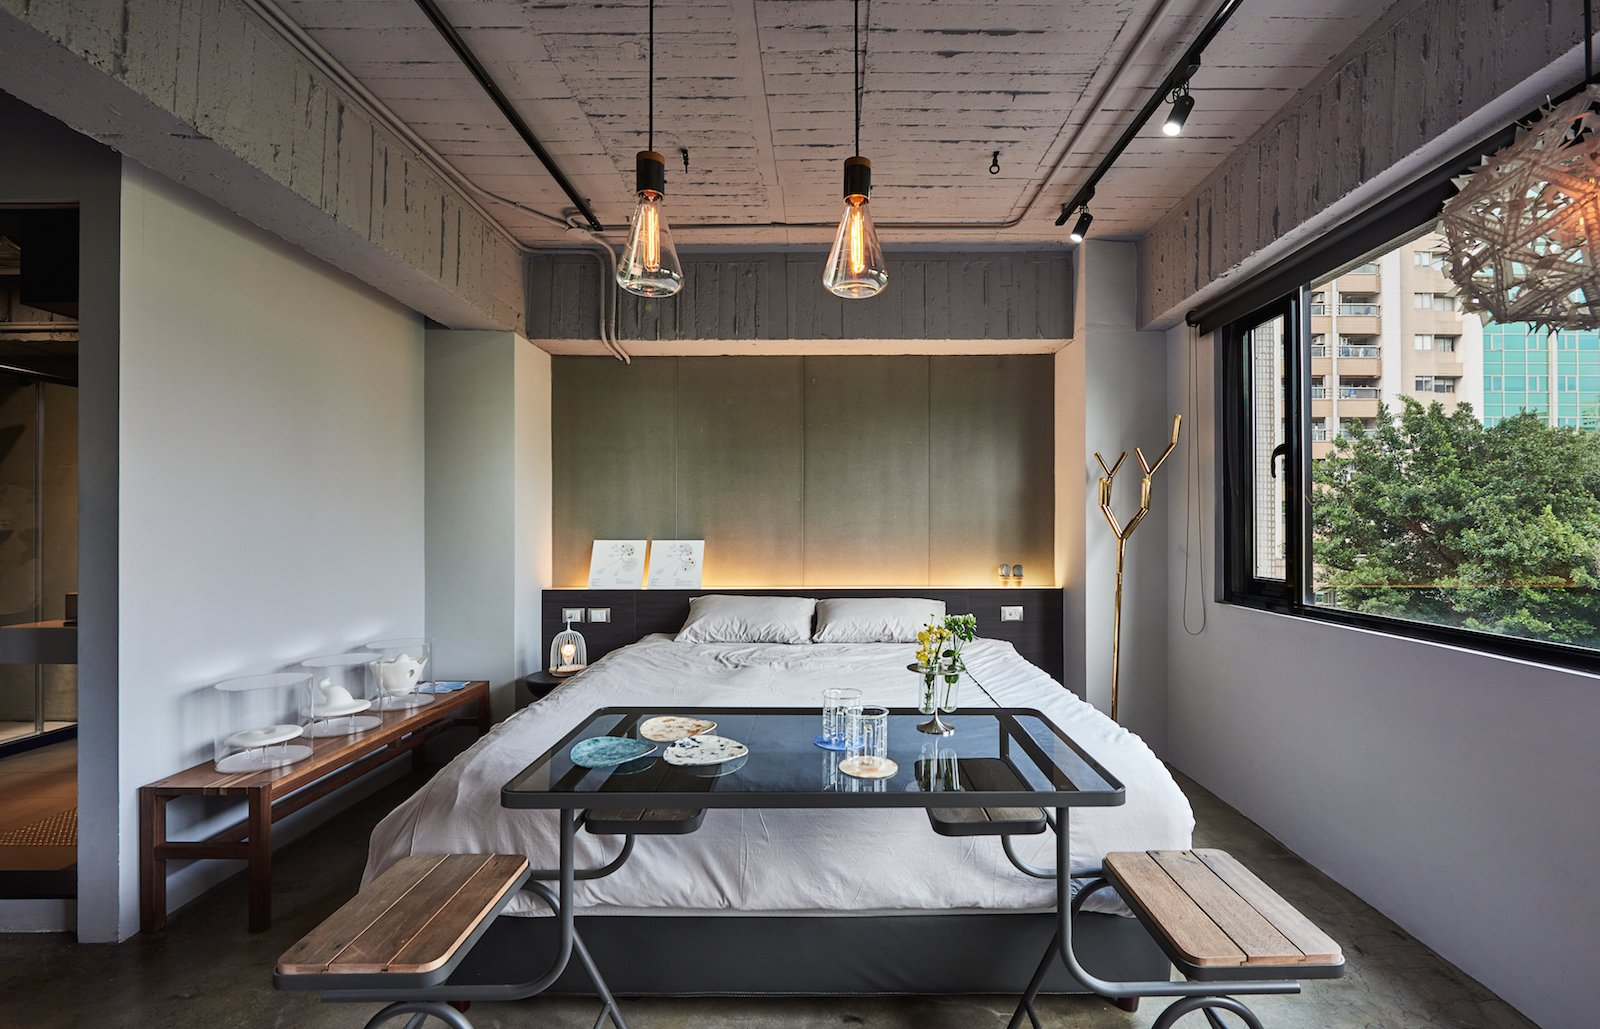 Bedroom, Pendant, Bed, Bench, Track, Concrete, Night Stands, and Accent Located on the fifth floor of an unassuming building in Datong district, Play Design Hotel is a hidden gem with only a small sign to announce its presence. Polished concrete walls and floors coupled with large, black, metal-framed windows create an elegant backdrop for the hand-picked design objects sourced from over 100 local Taiwanese designers.   Bedroom Night Stands Track Photos from Go Off the Beaten Path at This Interactive Design Hotel in Taipei